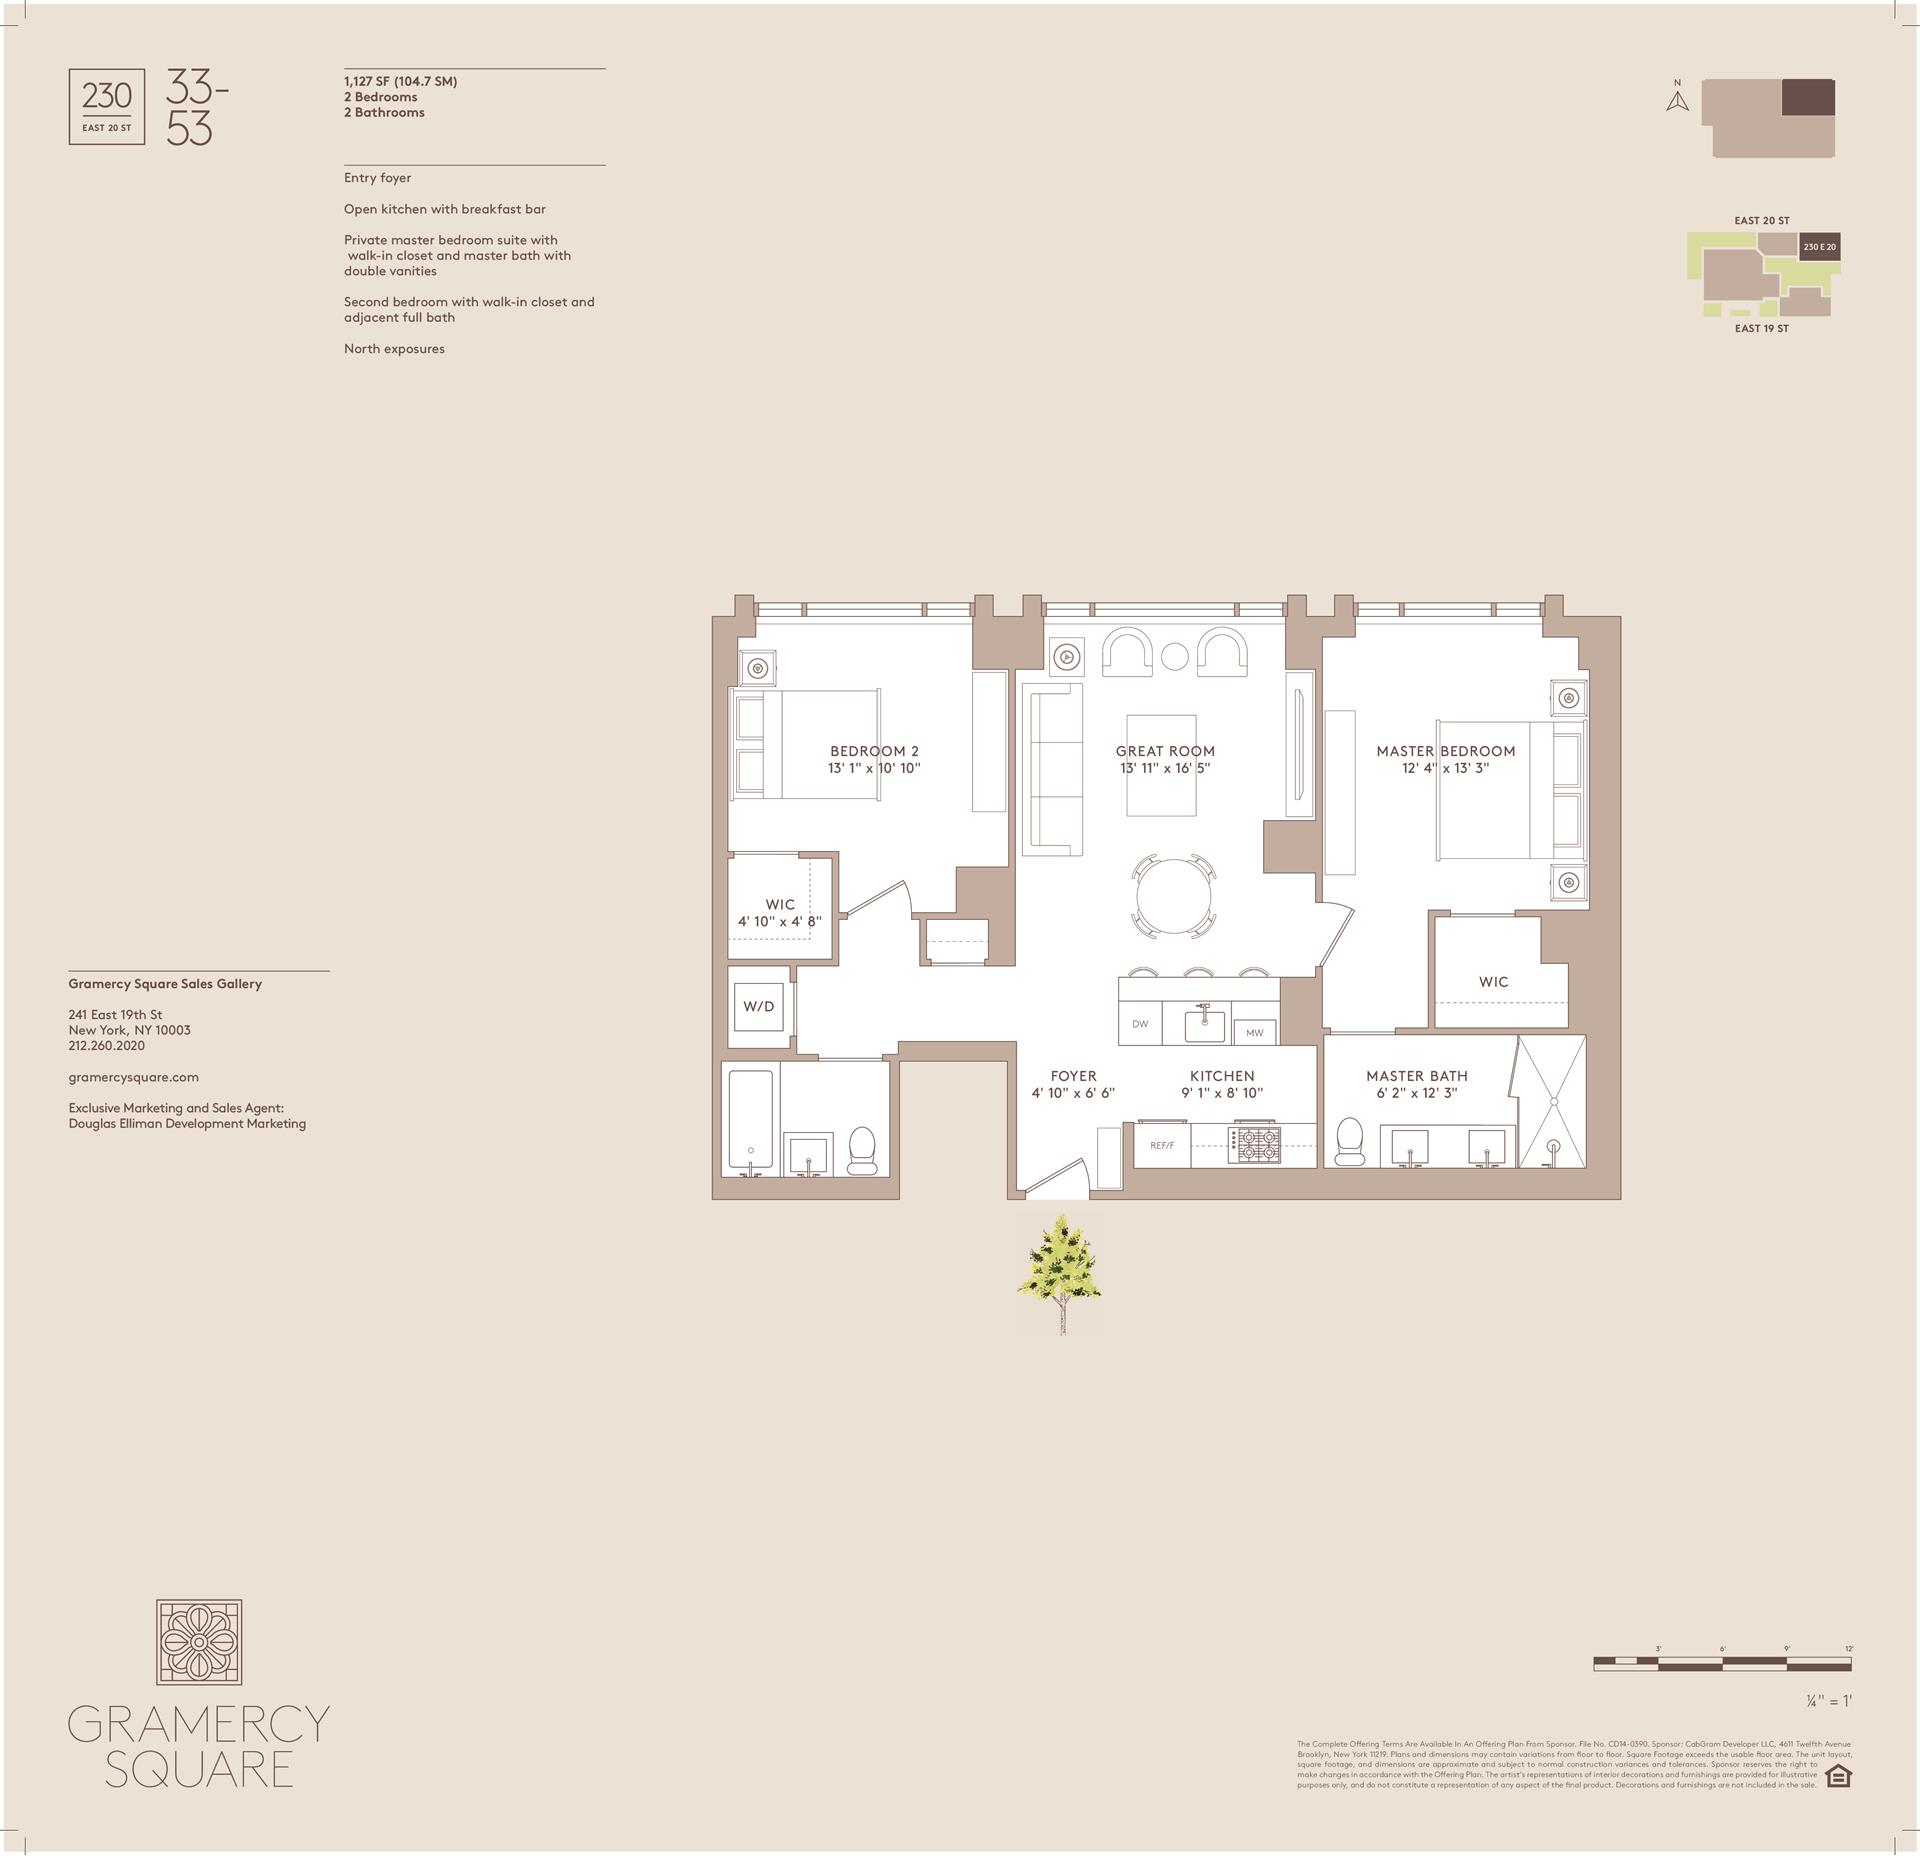 Floor plan of Gramercy Square, 230 East 20th St, 53 - Gramercy - Union Square, New York